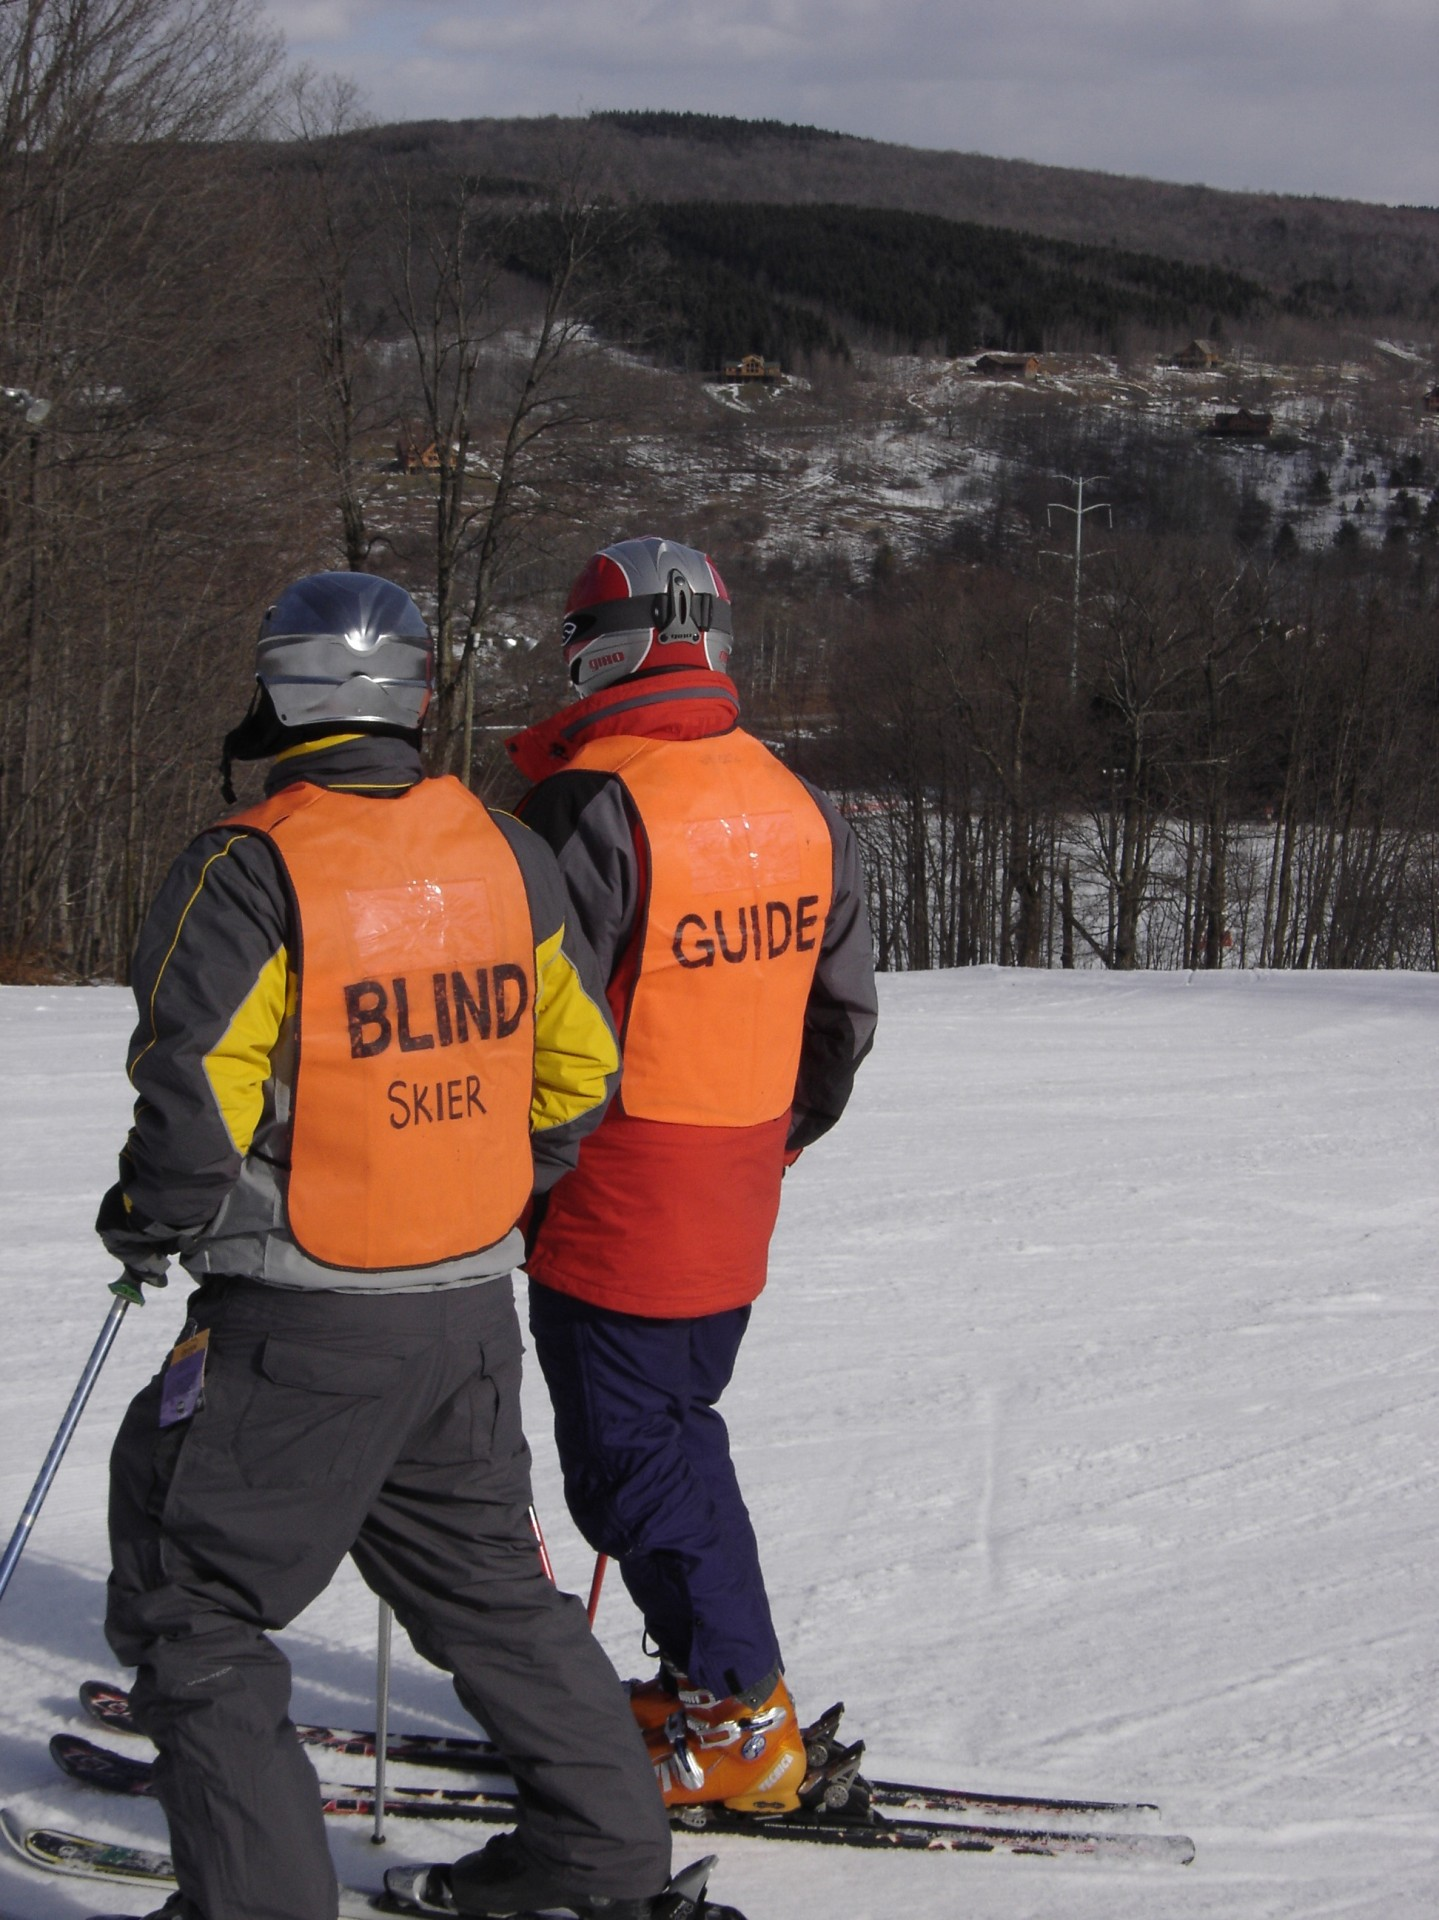 Guiding skier with vision impairment